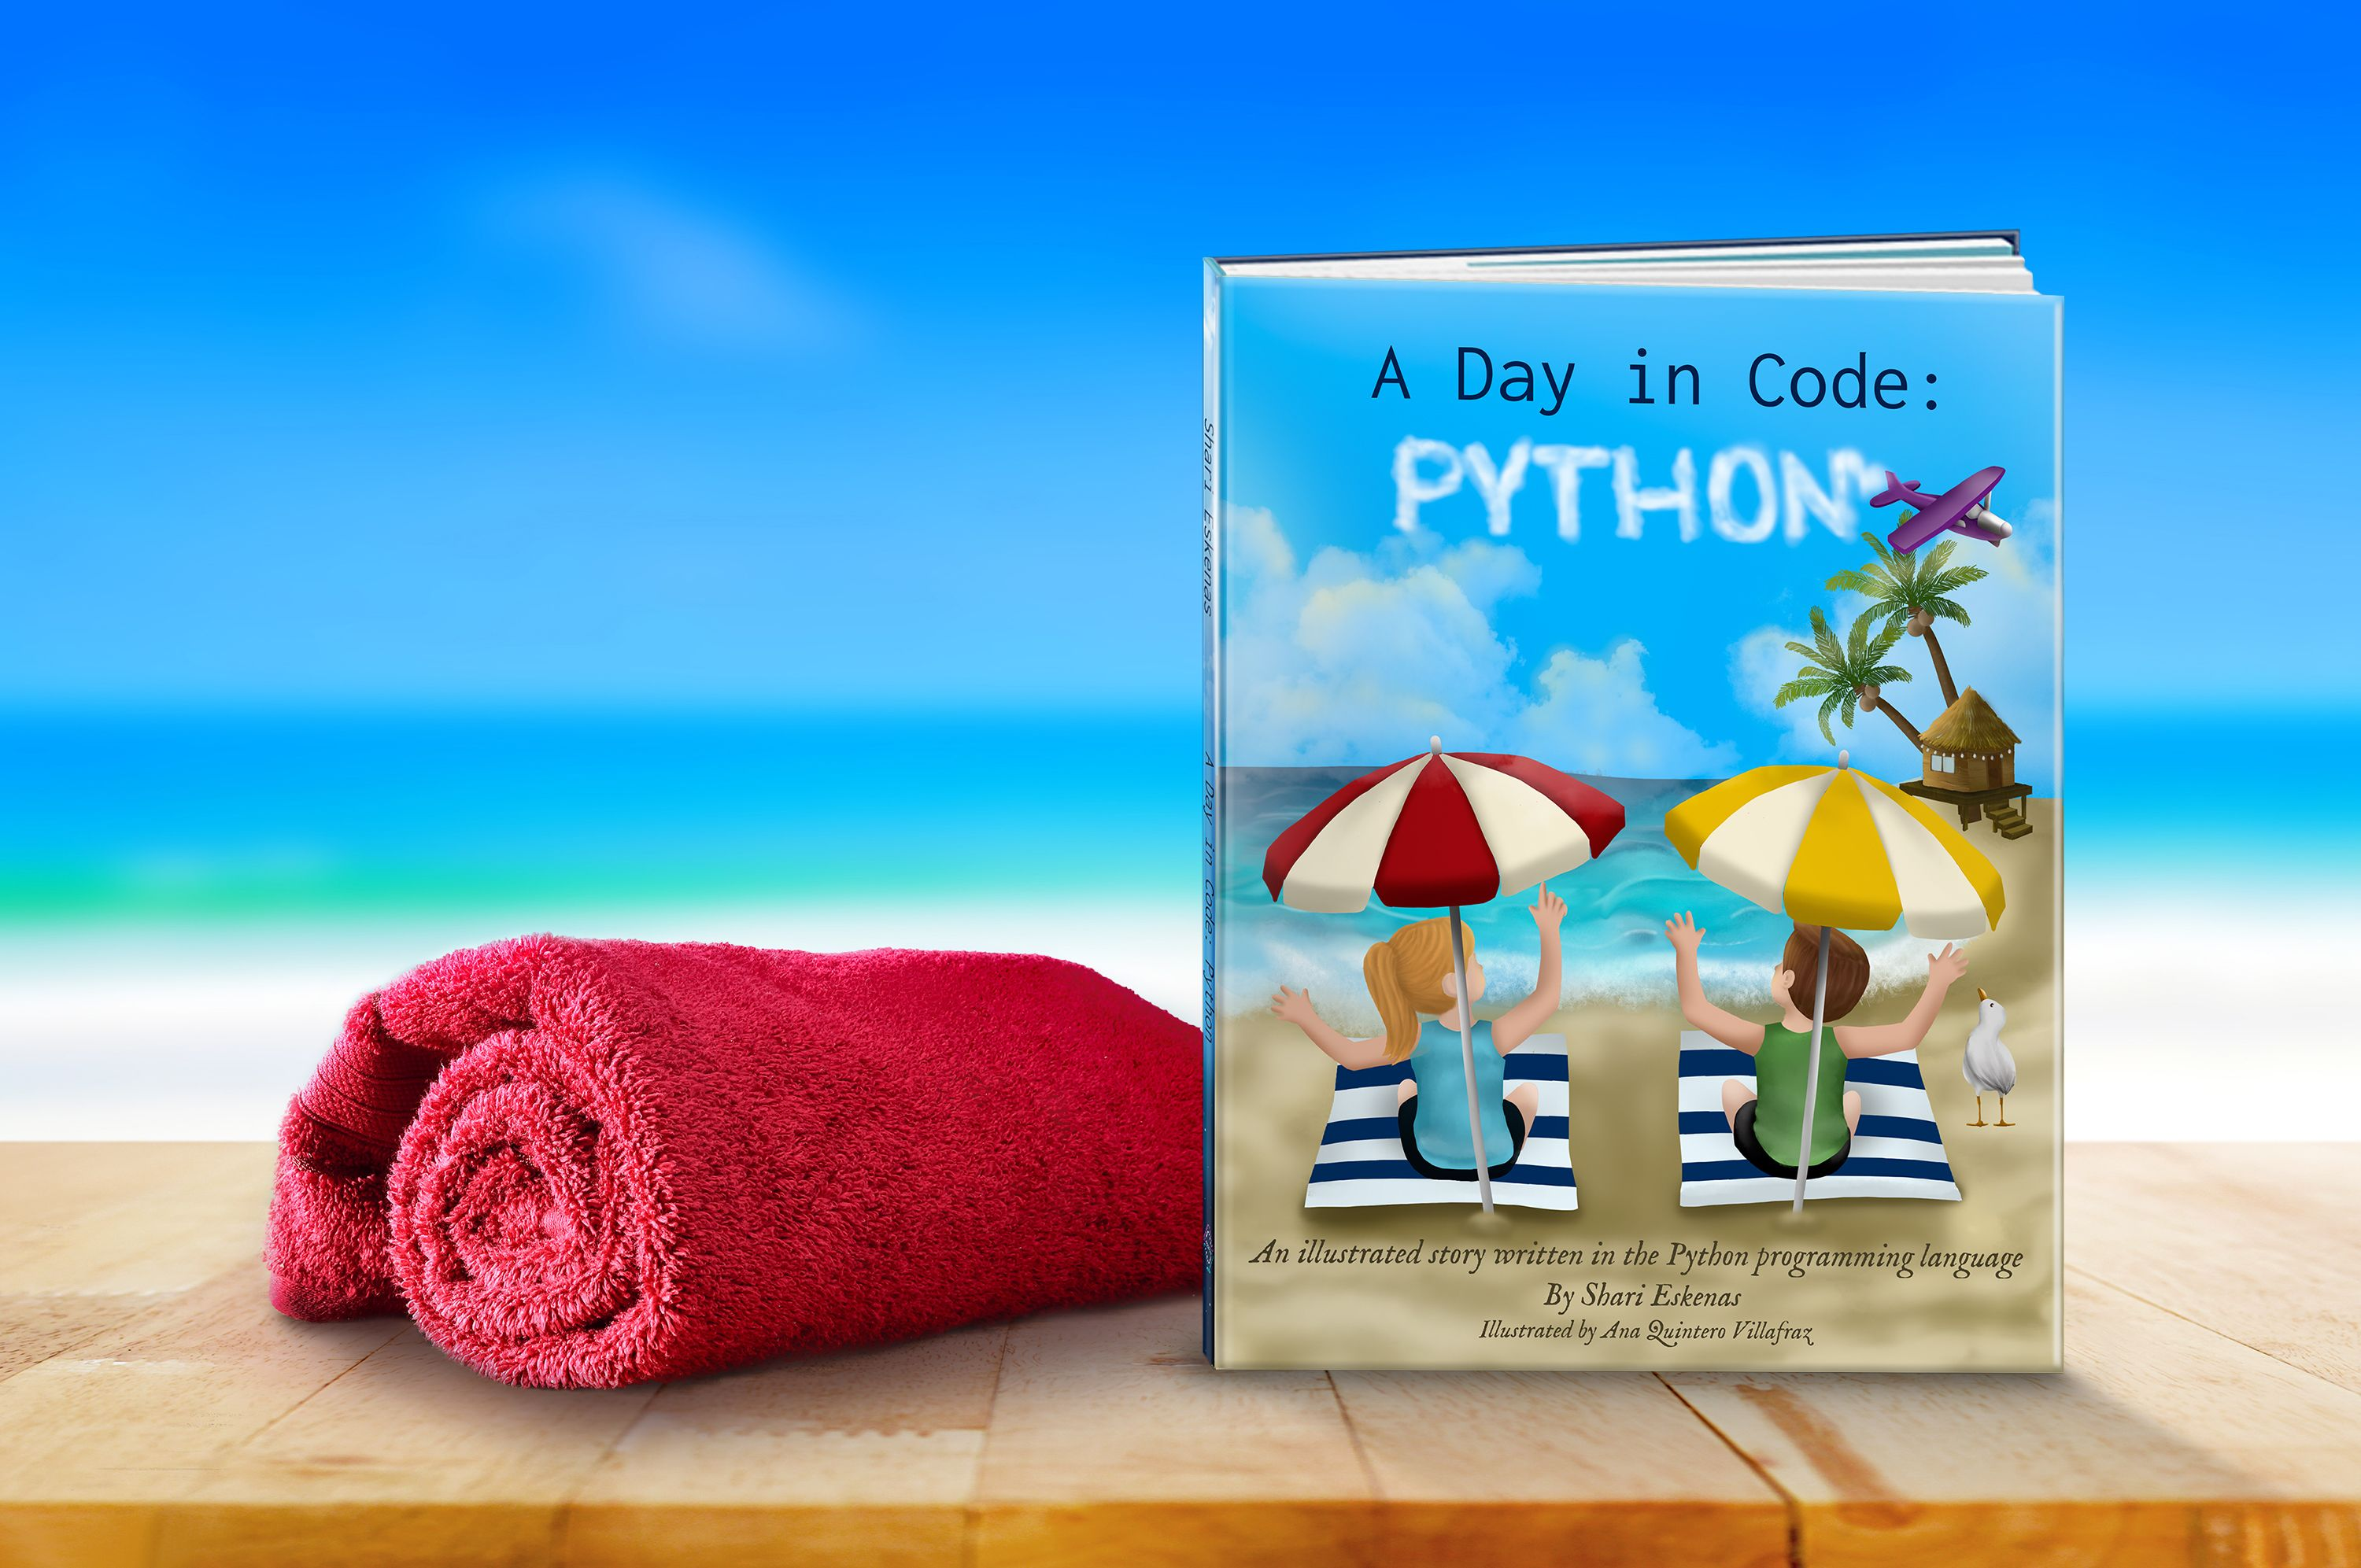 /about-the-python-code-picture-book-682034pj feature image